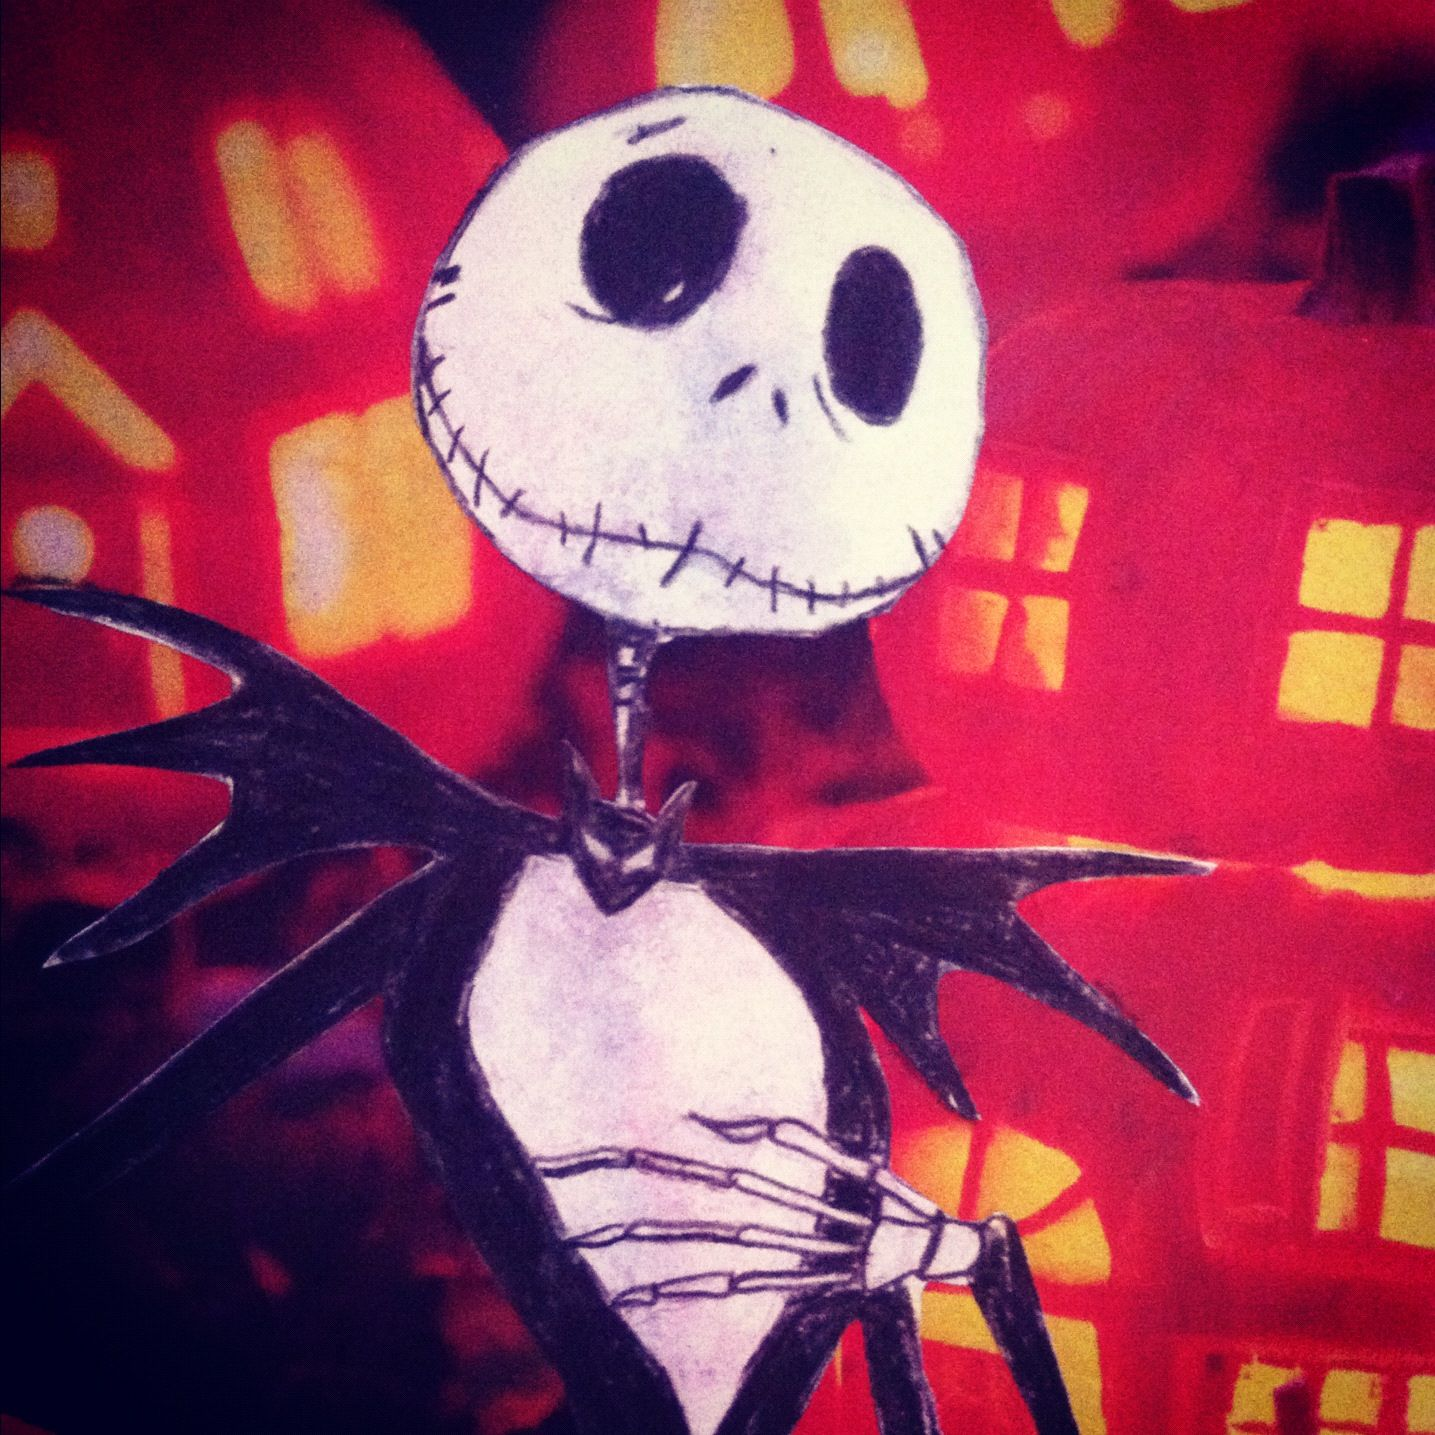 The nightmare before christmas | TV, Film, Music, & Books ...